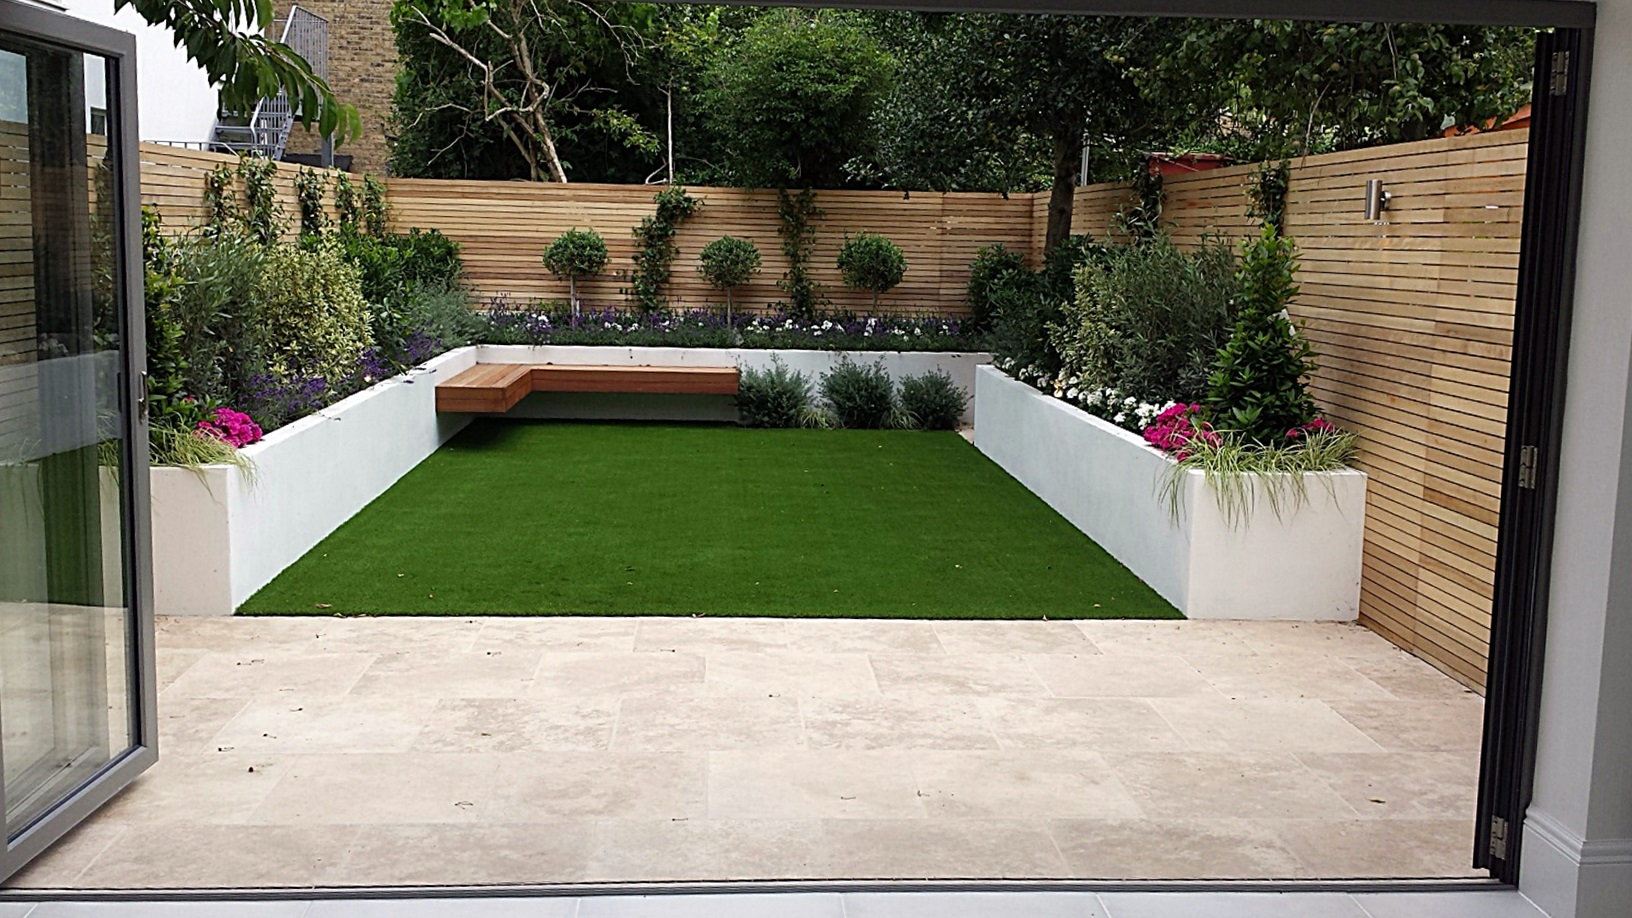 Wandsworth Urban Garden Design: Travertine Paving Patio Render Block Raised Beds Hardwood